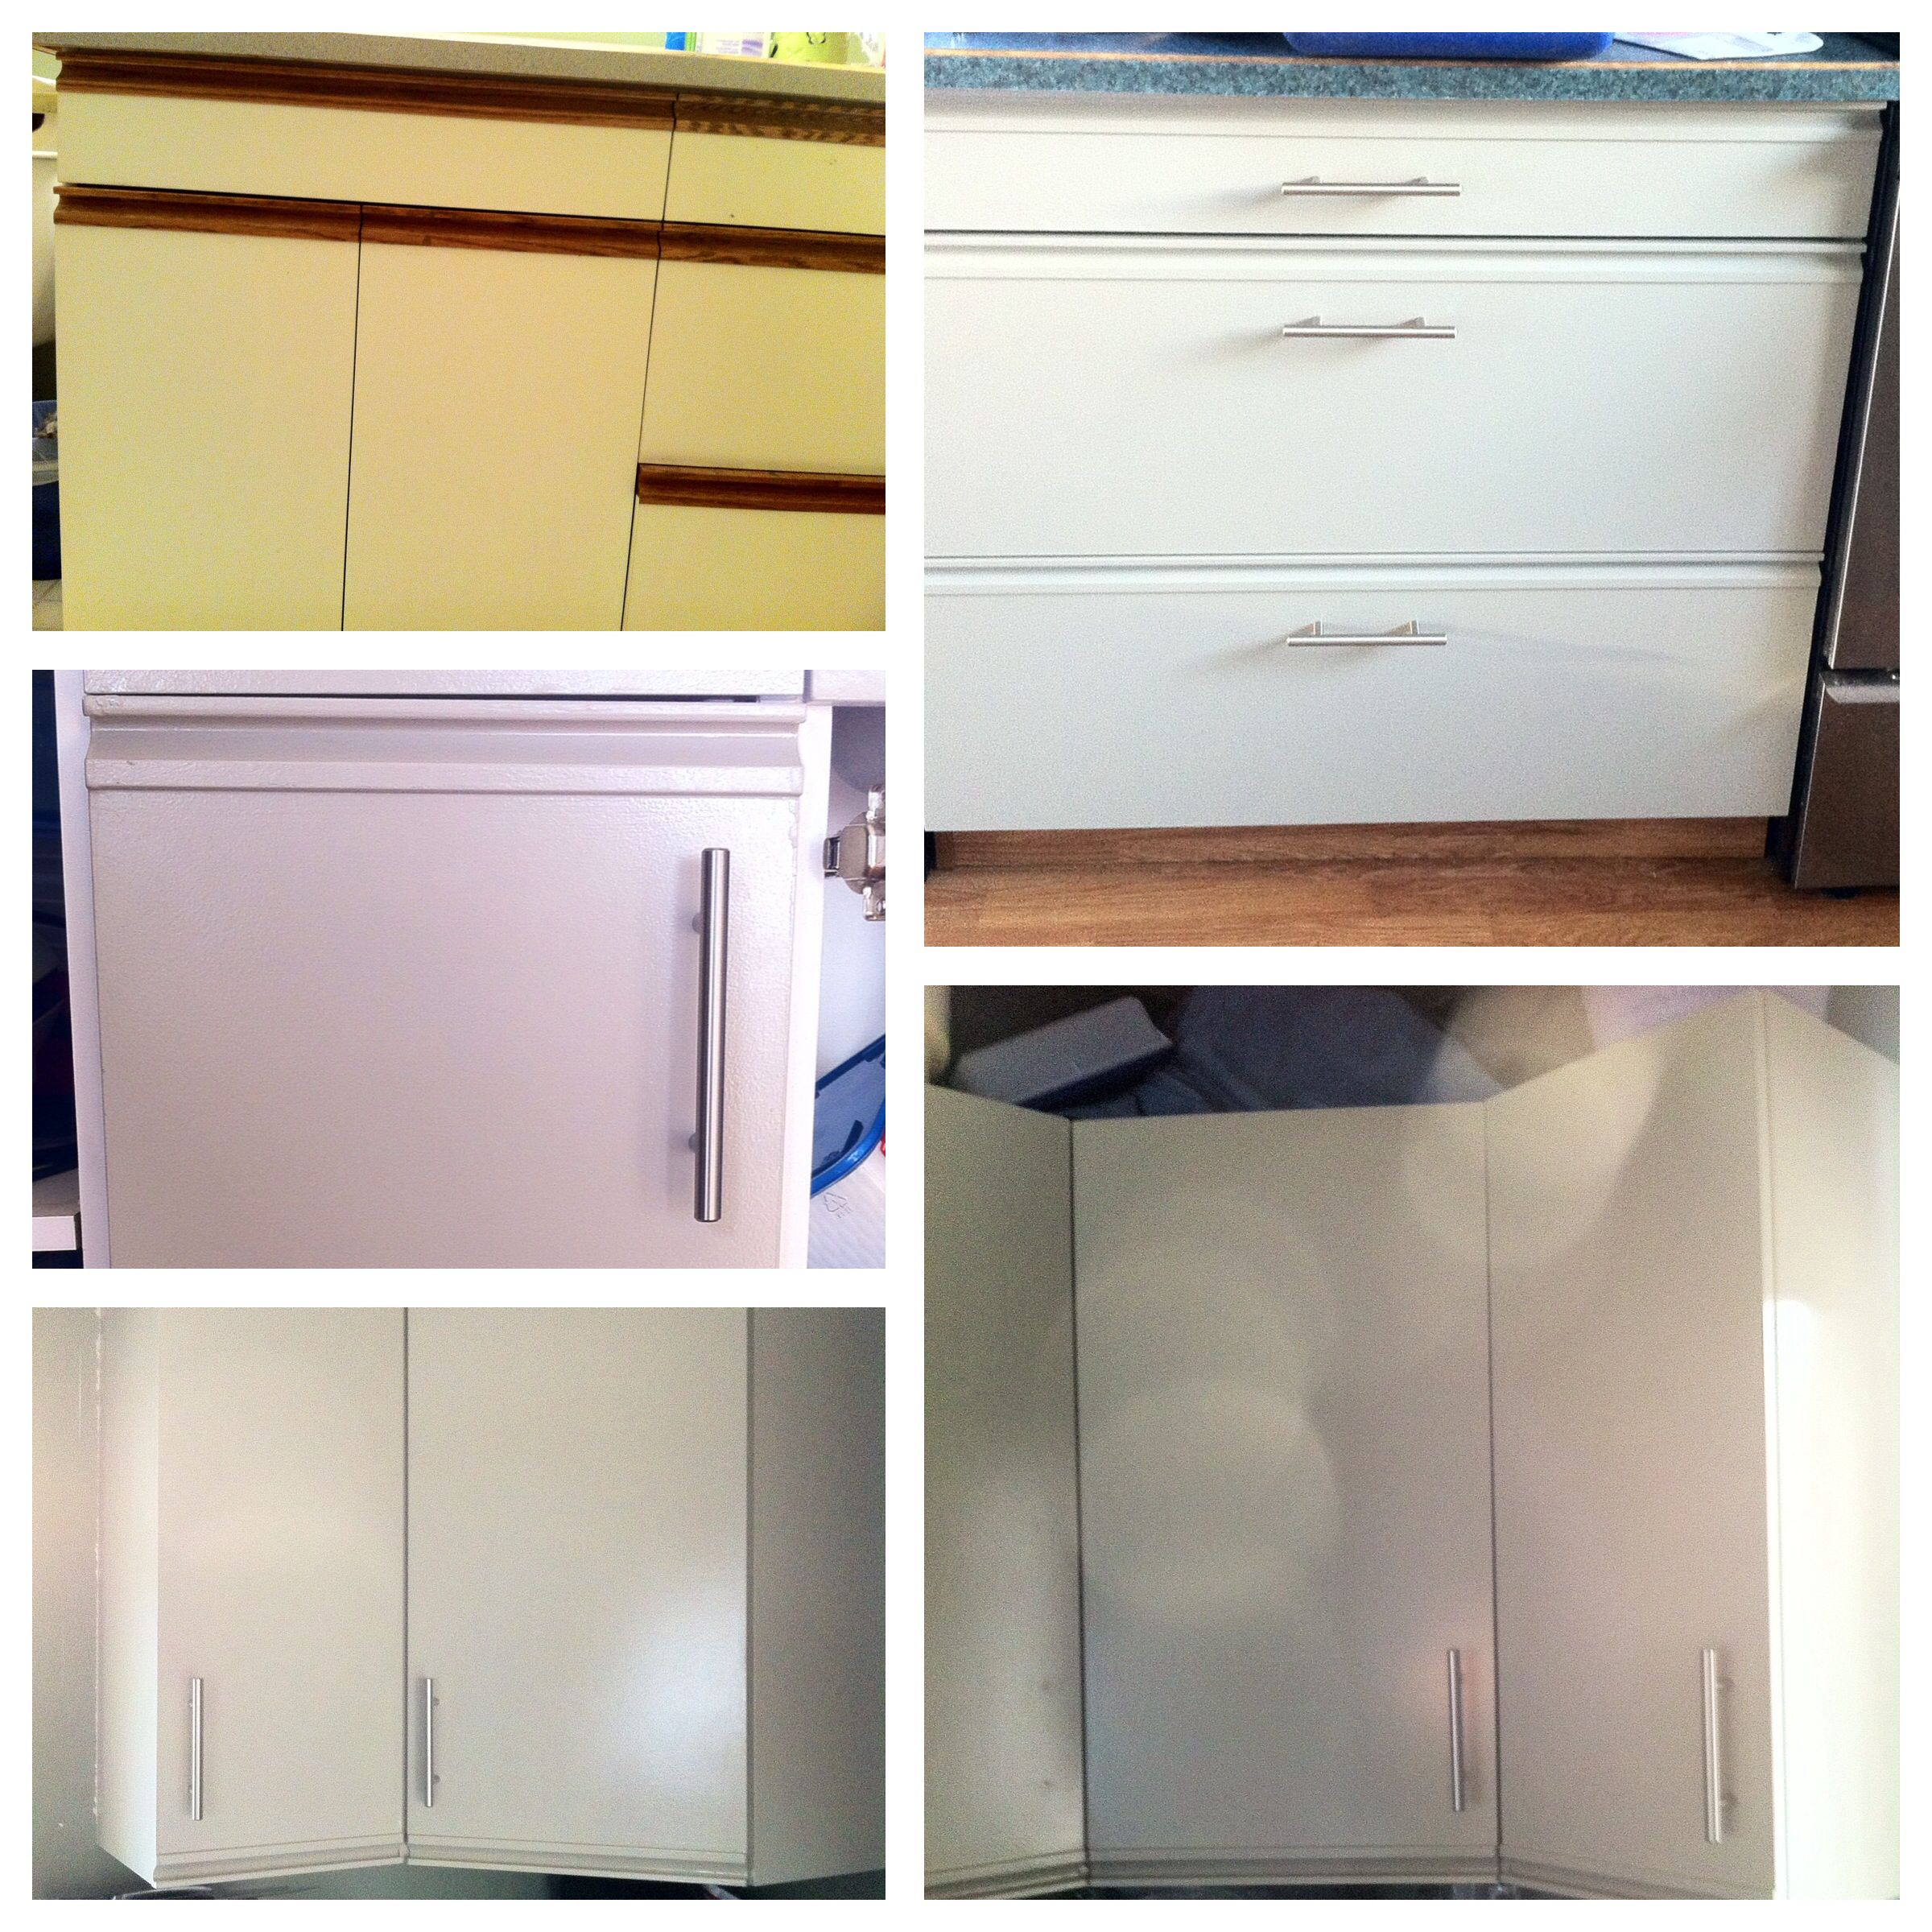 DIY Painted Cabinets. Painting Laminate/melamine Kitchen